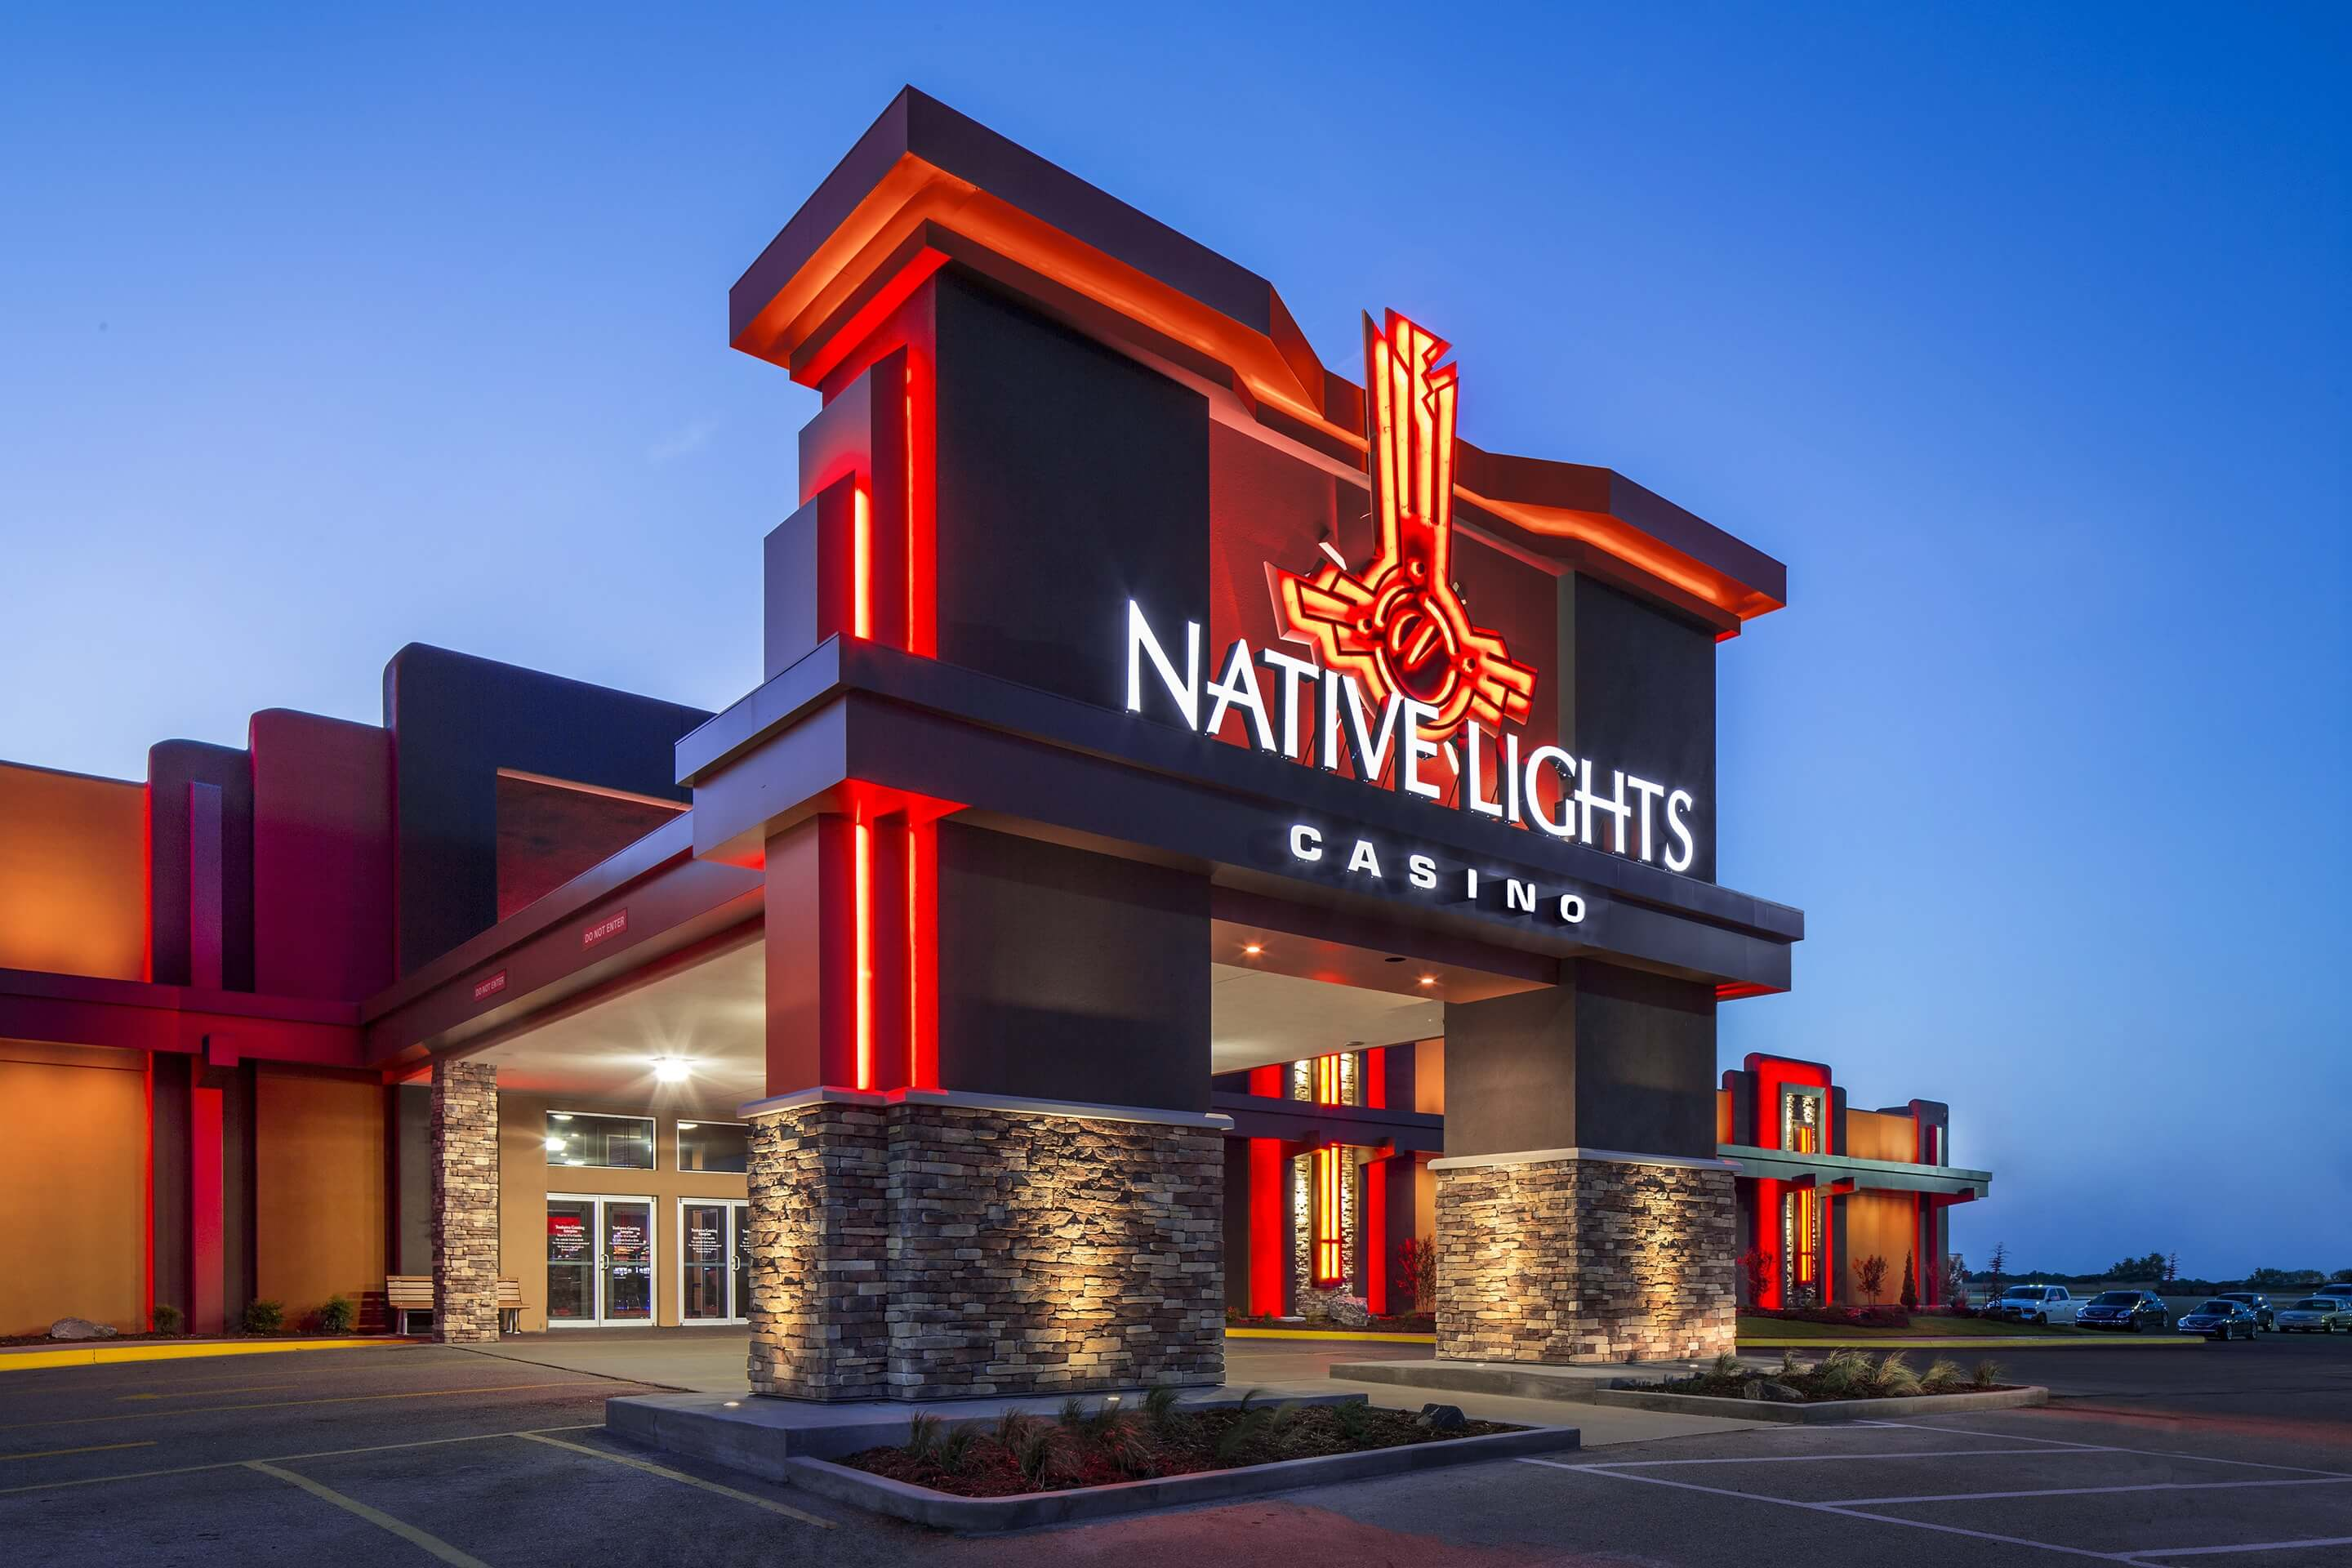 TOP 10 INTERESTING FACTS ABOUT NATIVE AMERICAN CASINOS